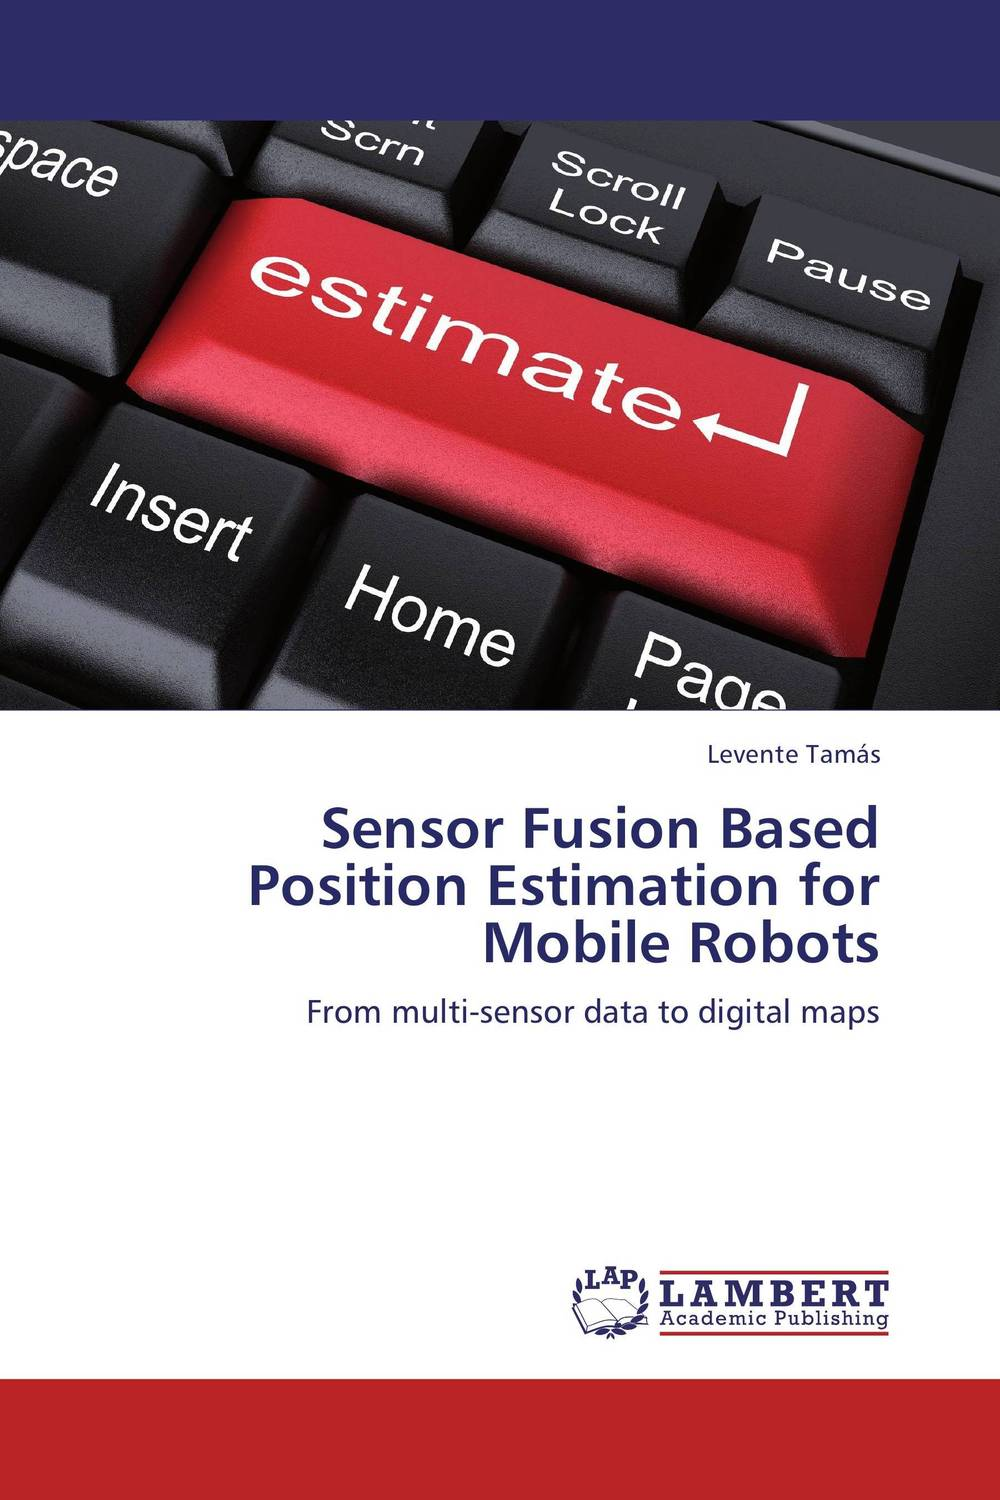 Sensor Fusion Based Position Estimation for Mobile Robots mpso and mga approaches for mobile robot navigation